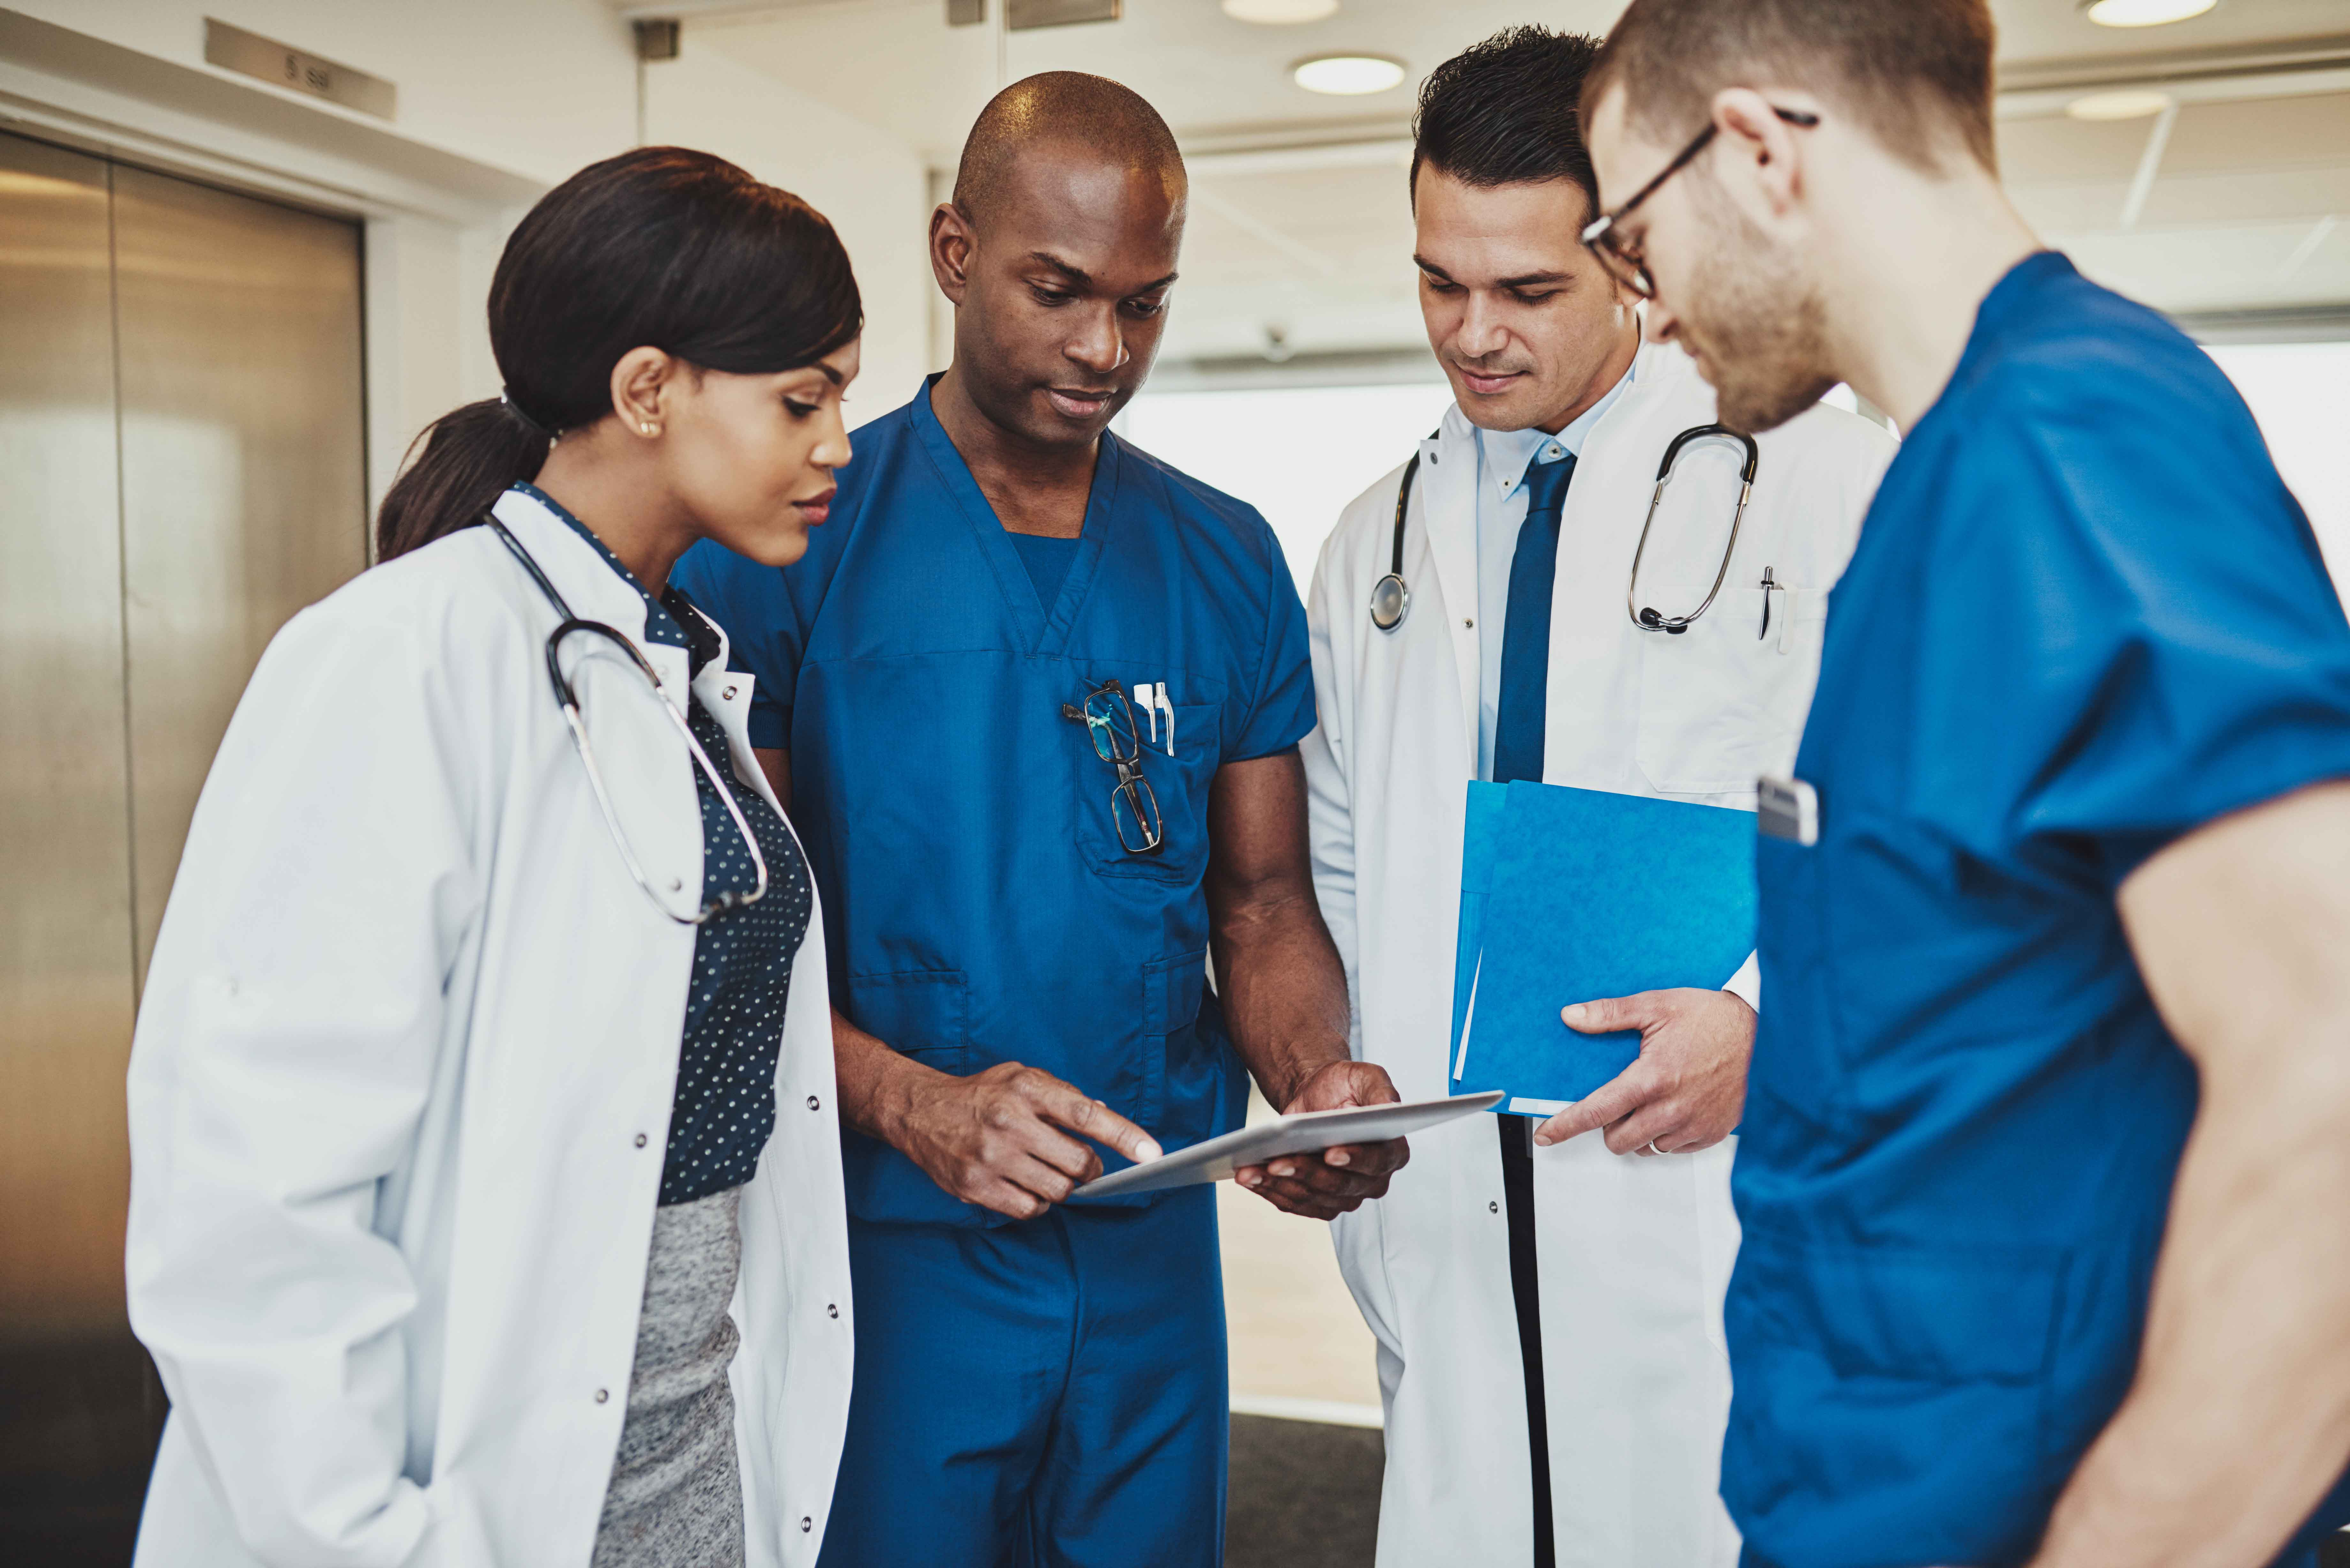 group-of-healthcare-professionals